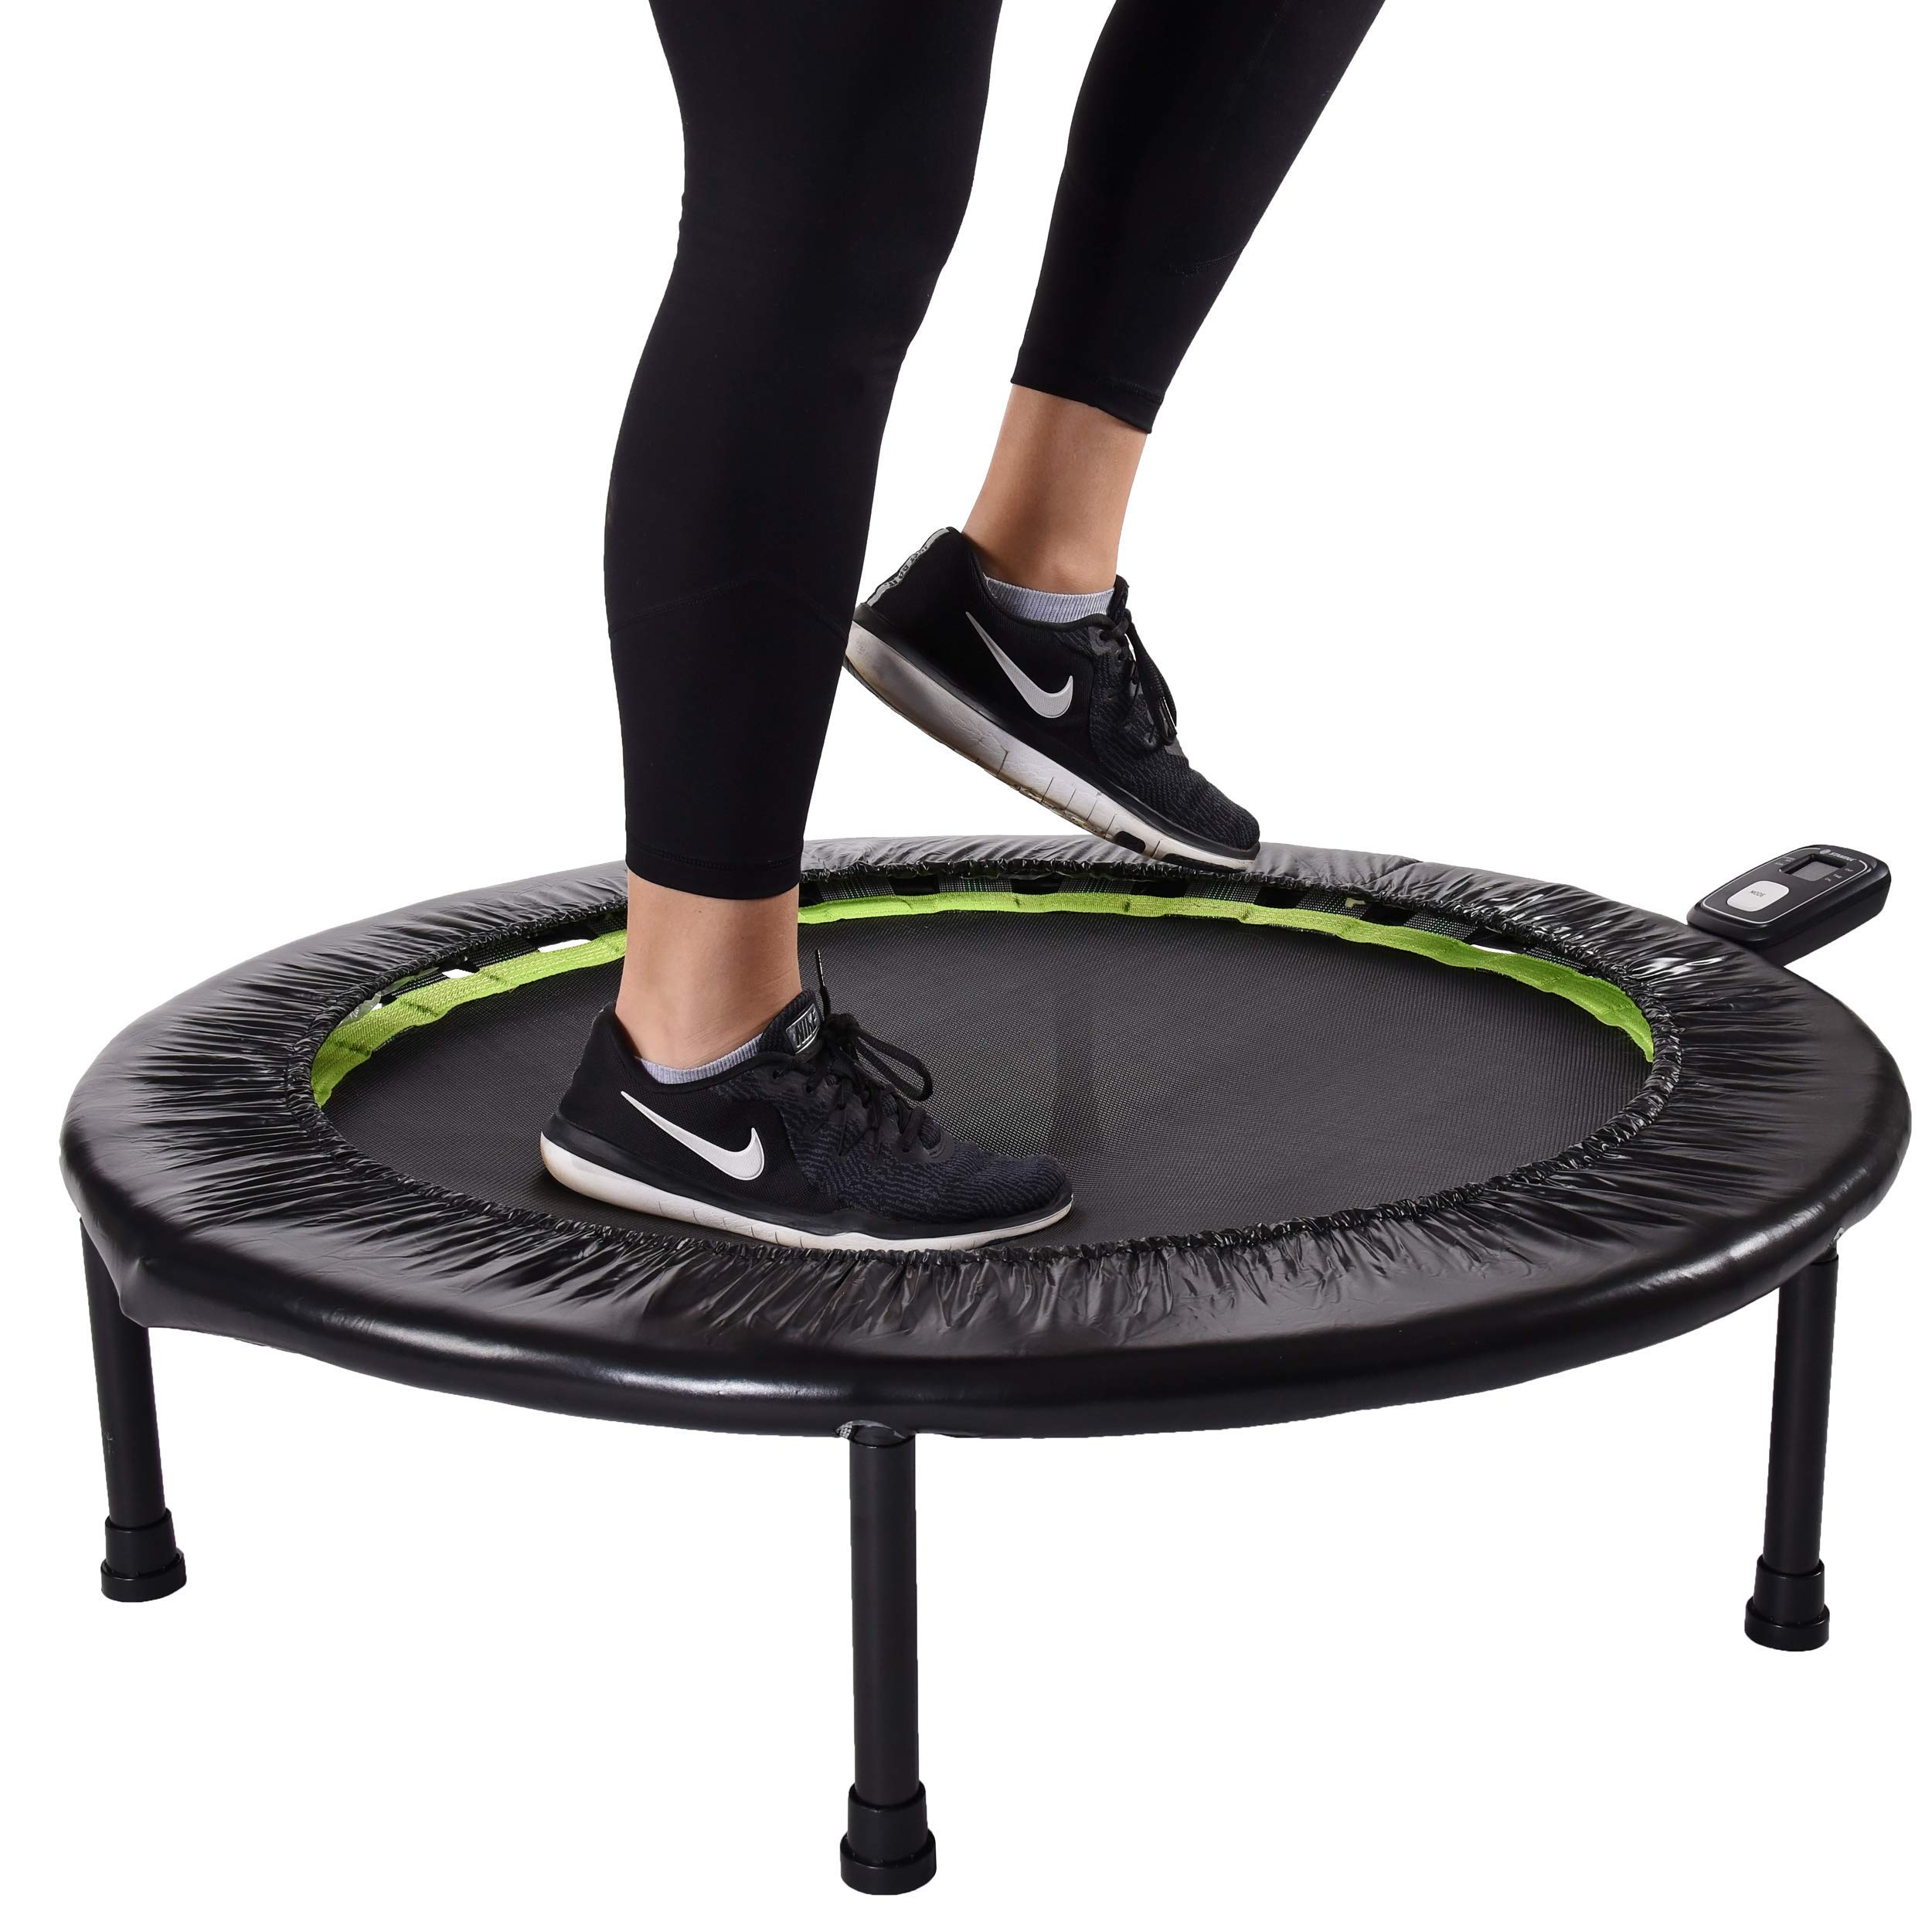 Stamina 1635 36-Inch Folding Trampoline | Quiet and Safe Bounce | Access to 3 Free Guided Online Workouts Included | Monitor Included | Stream from Any Device (Renewed)